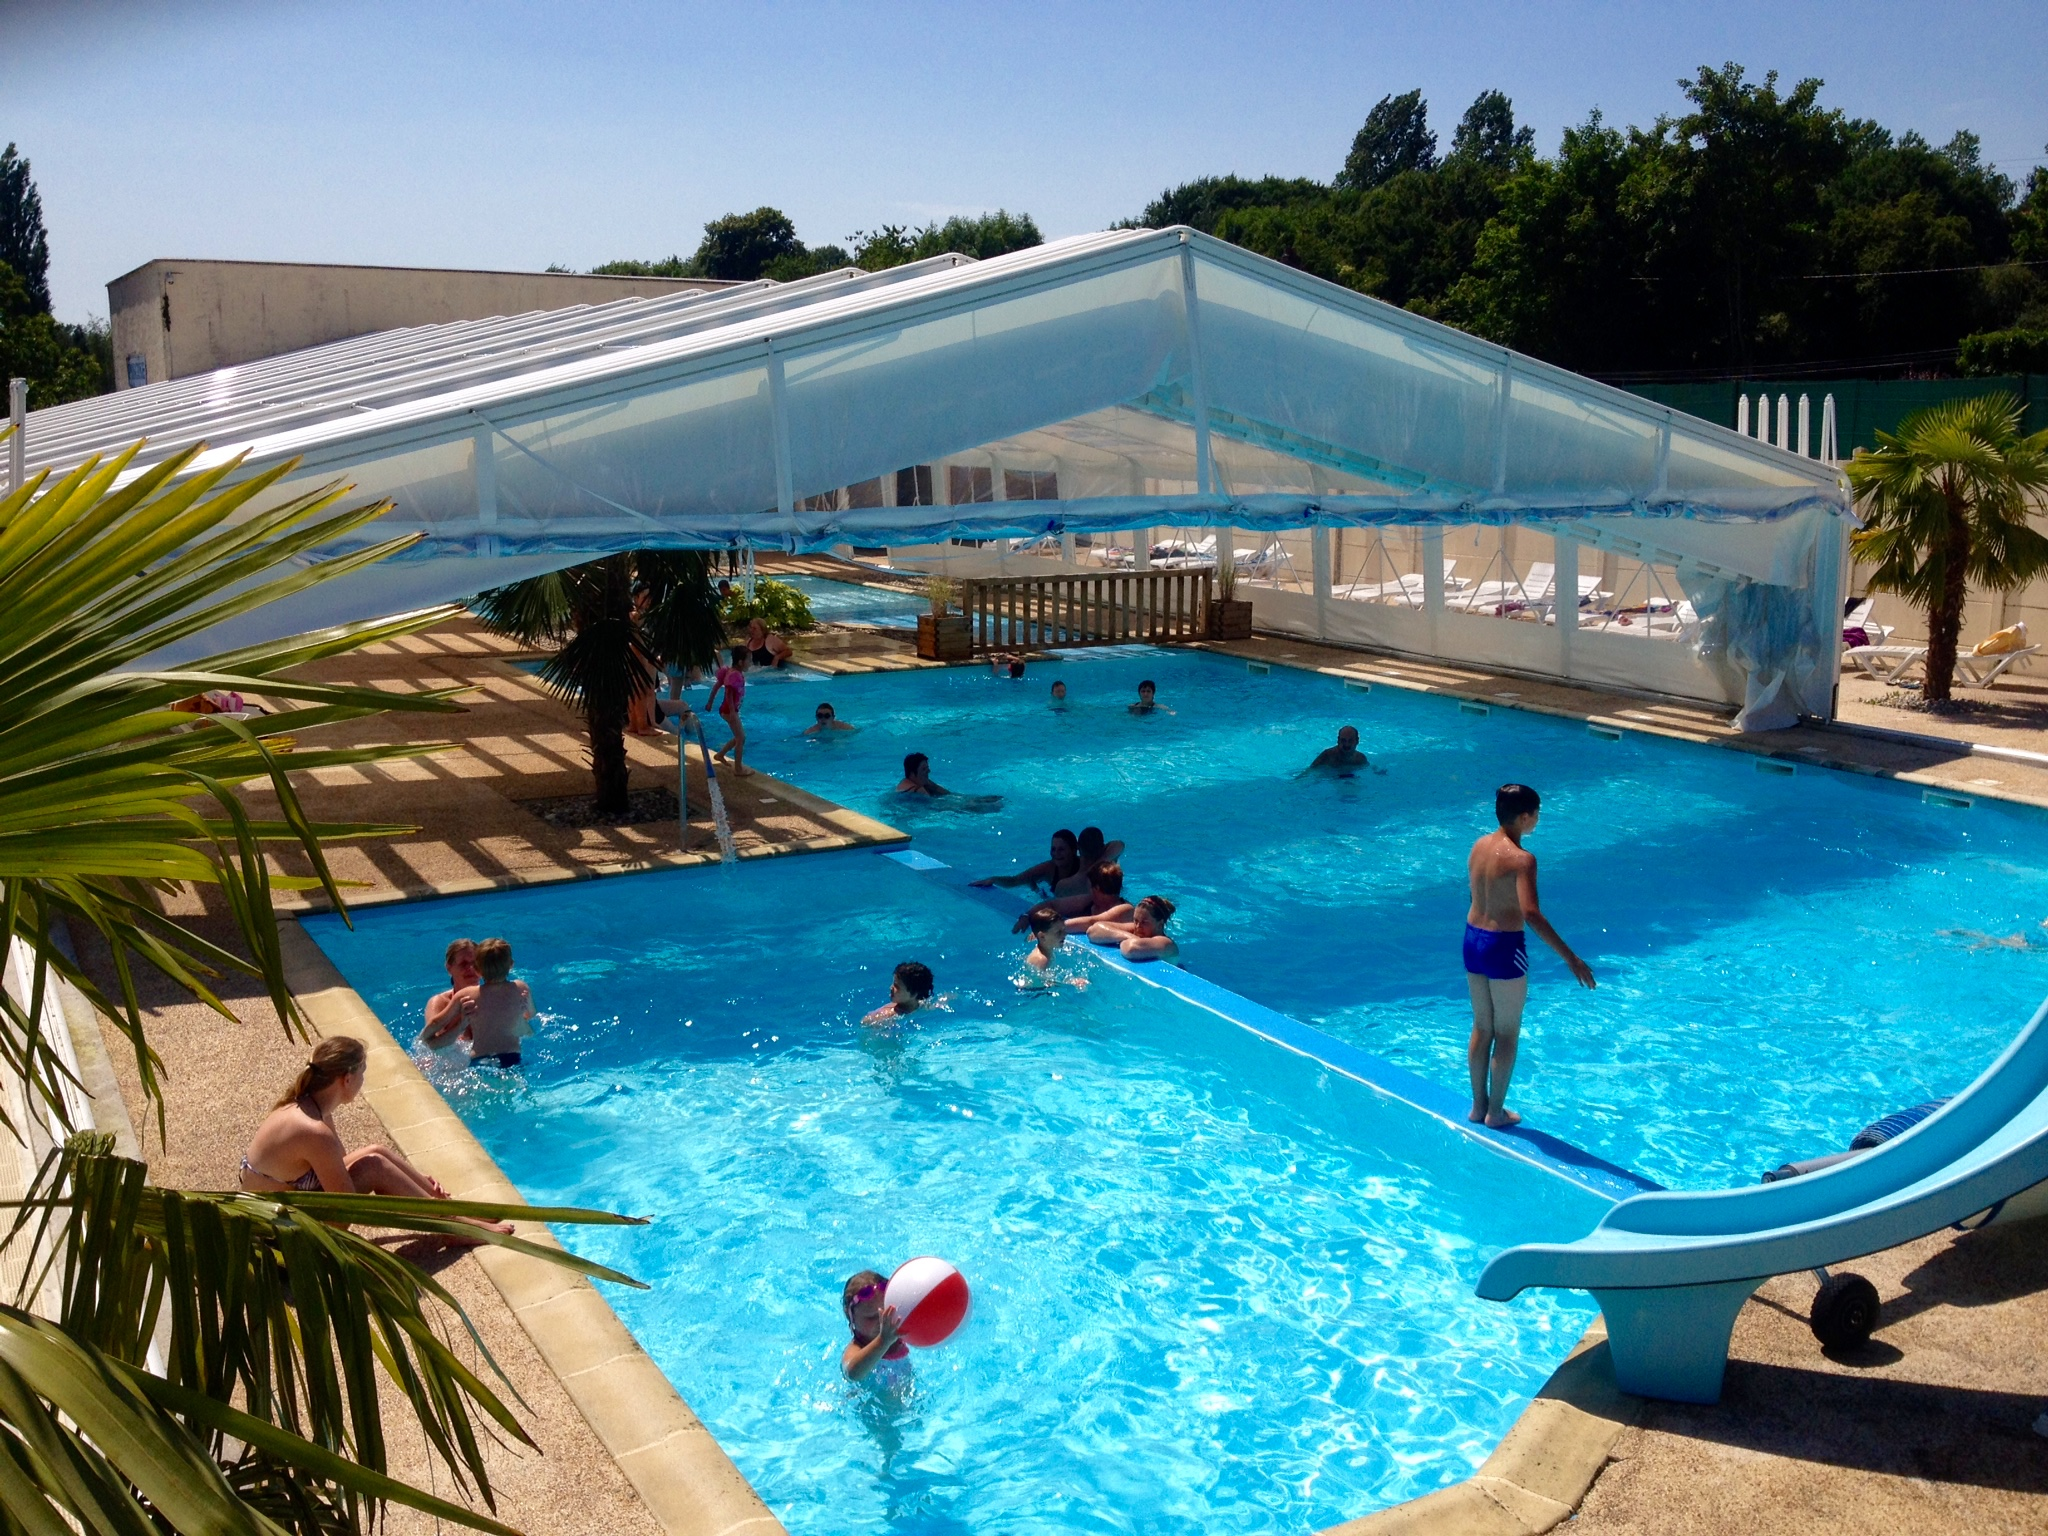 Walincourt-Selvigny-Camping La Kilienne, 1*